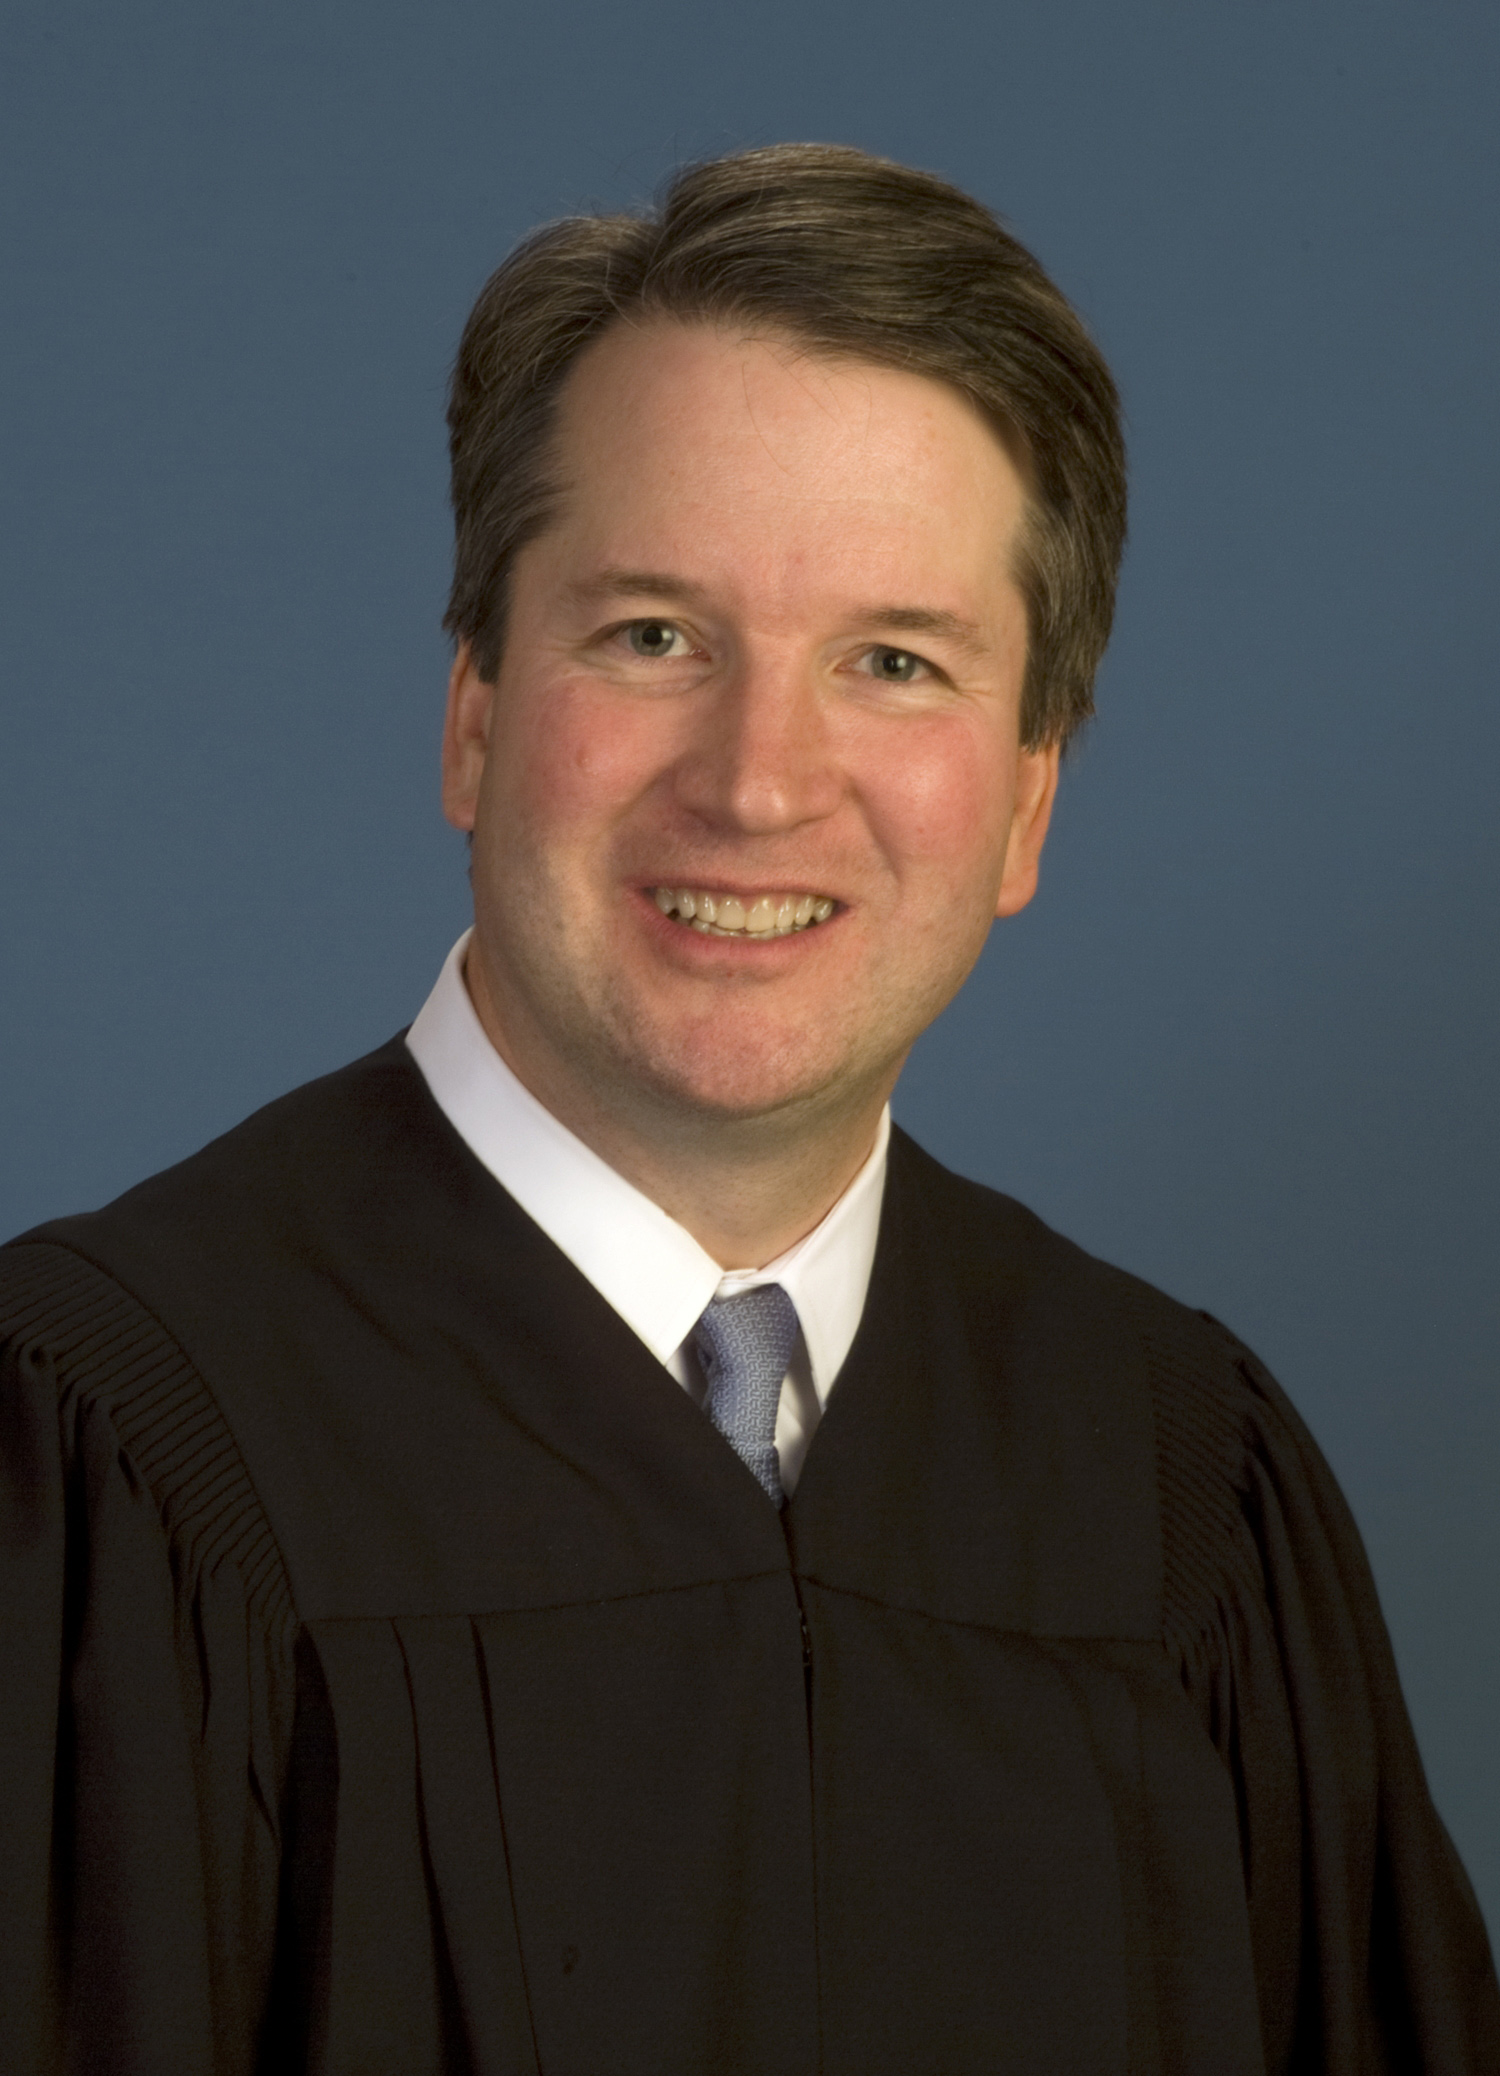 Judge Brett Kavanaugh (Photo courtesy of Wikimedia Commons)